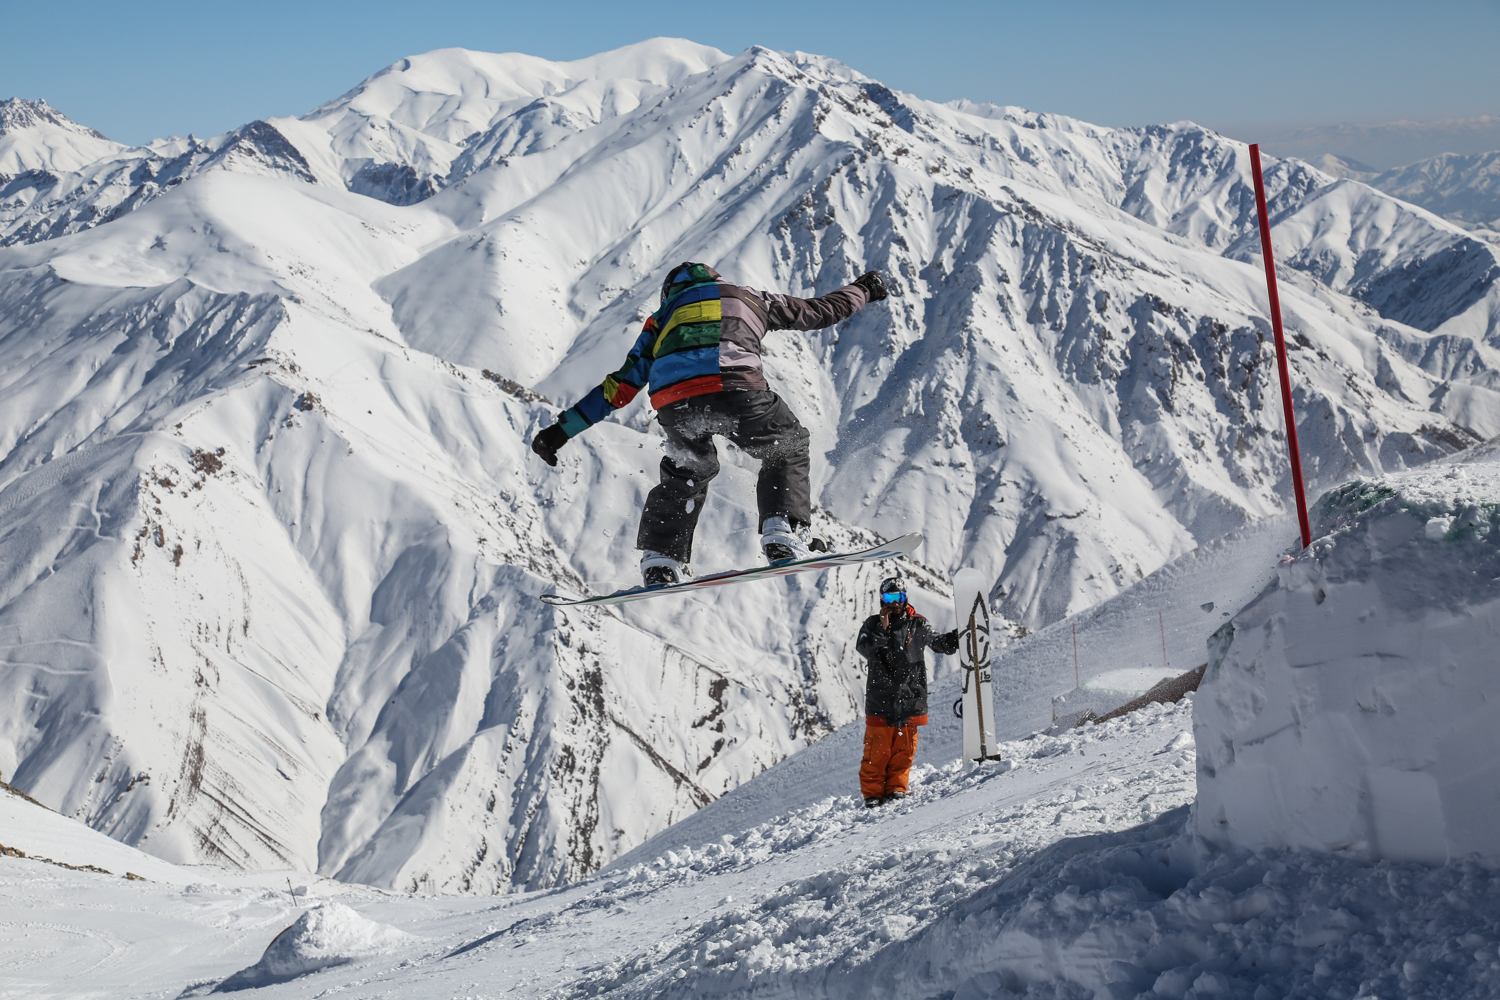 Skiing at Iran's 'gateway of the mountain' |